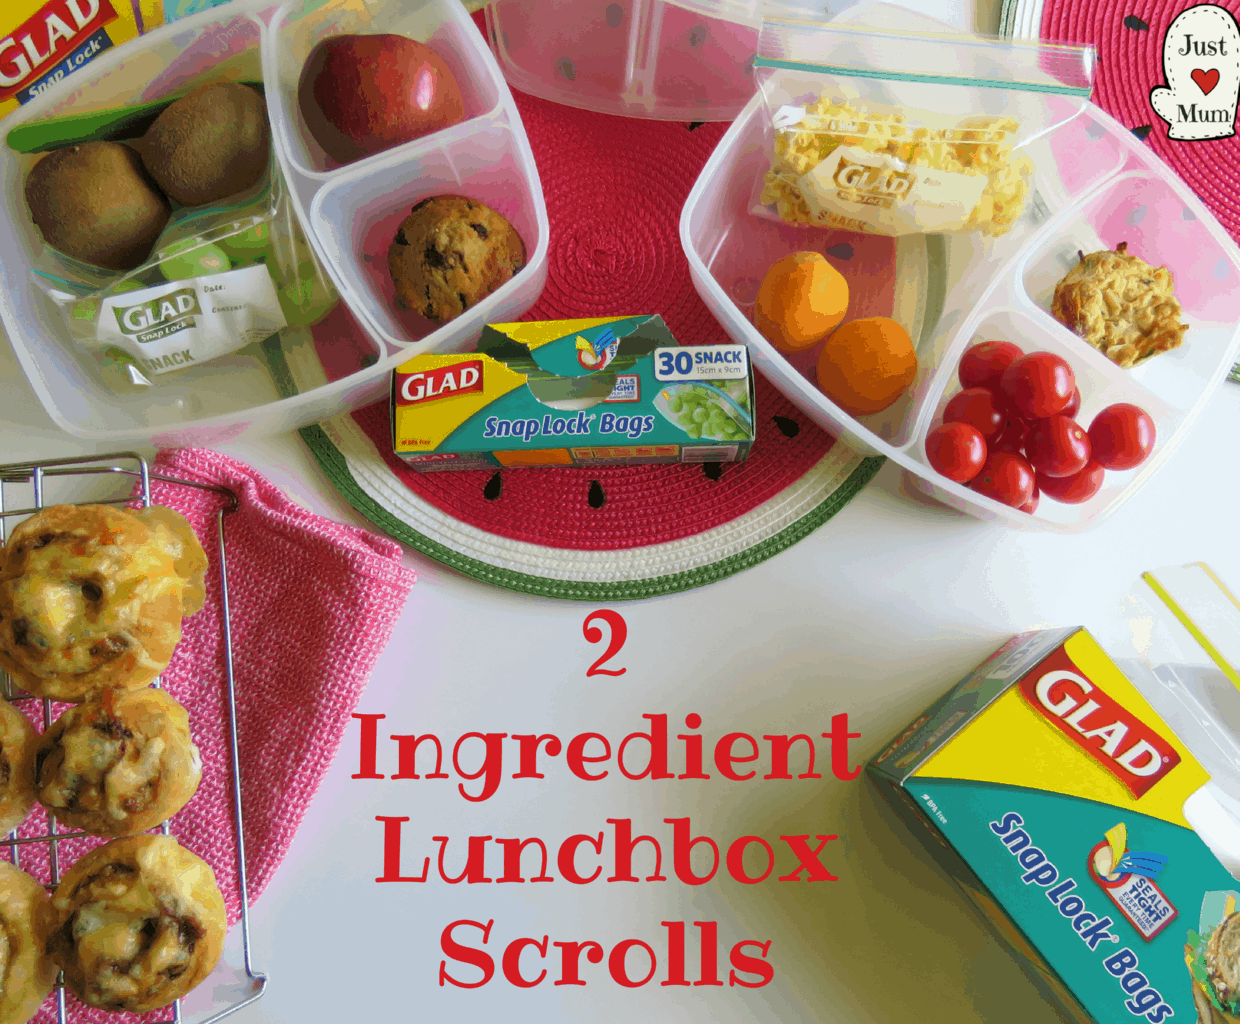 Just A Mum's 2 Ingredient Lunchbox Scrolls